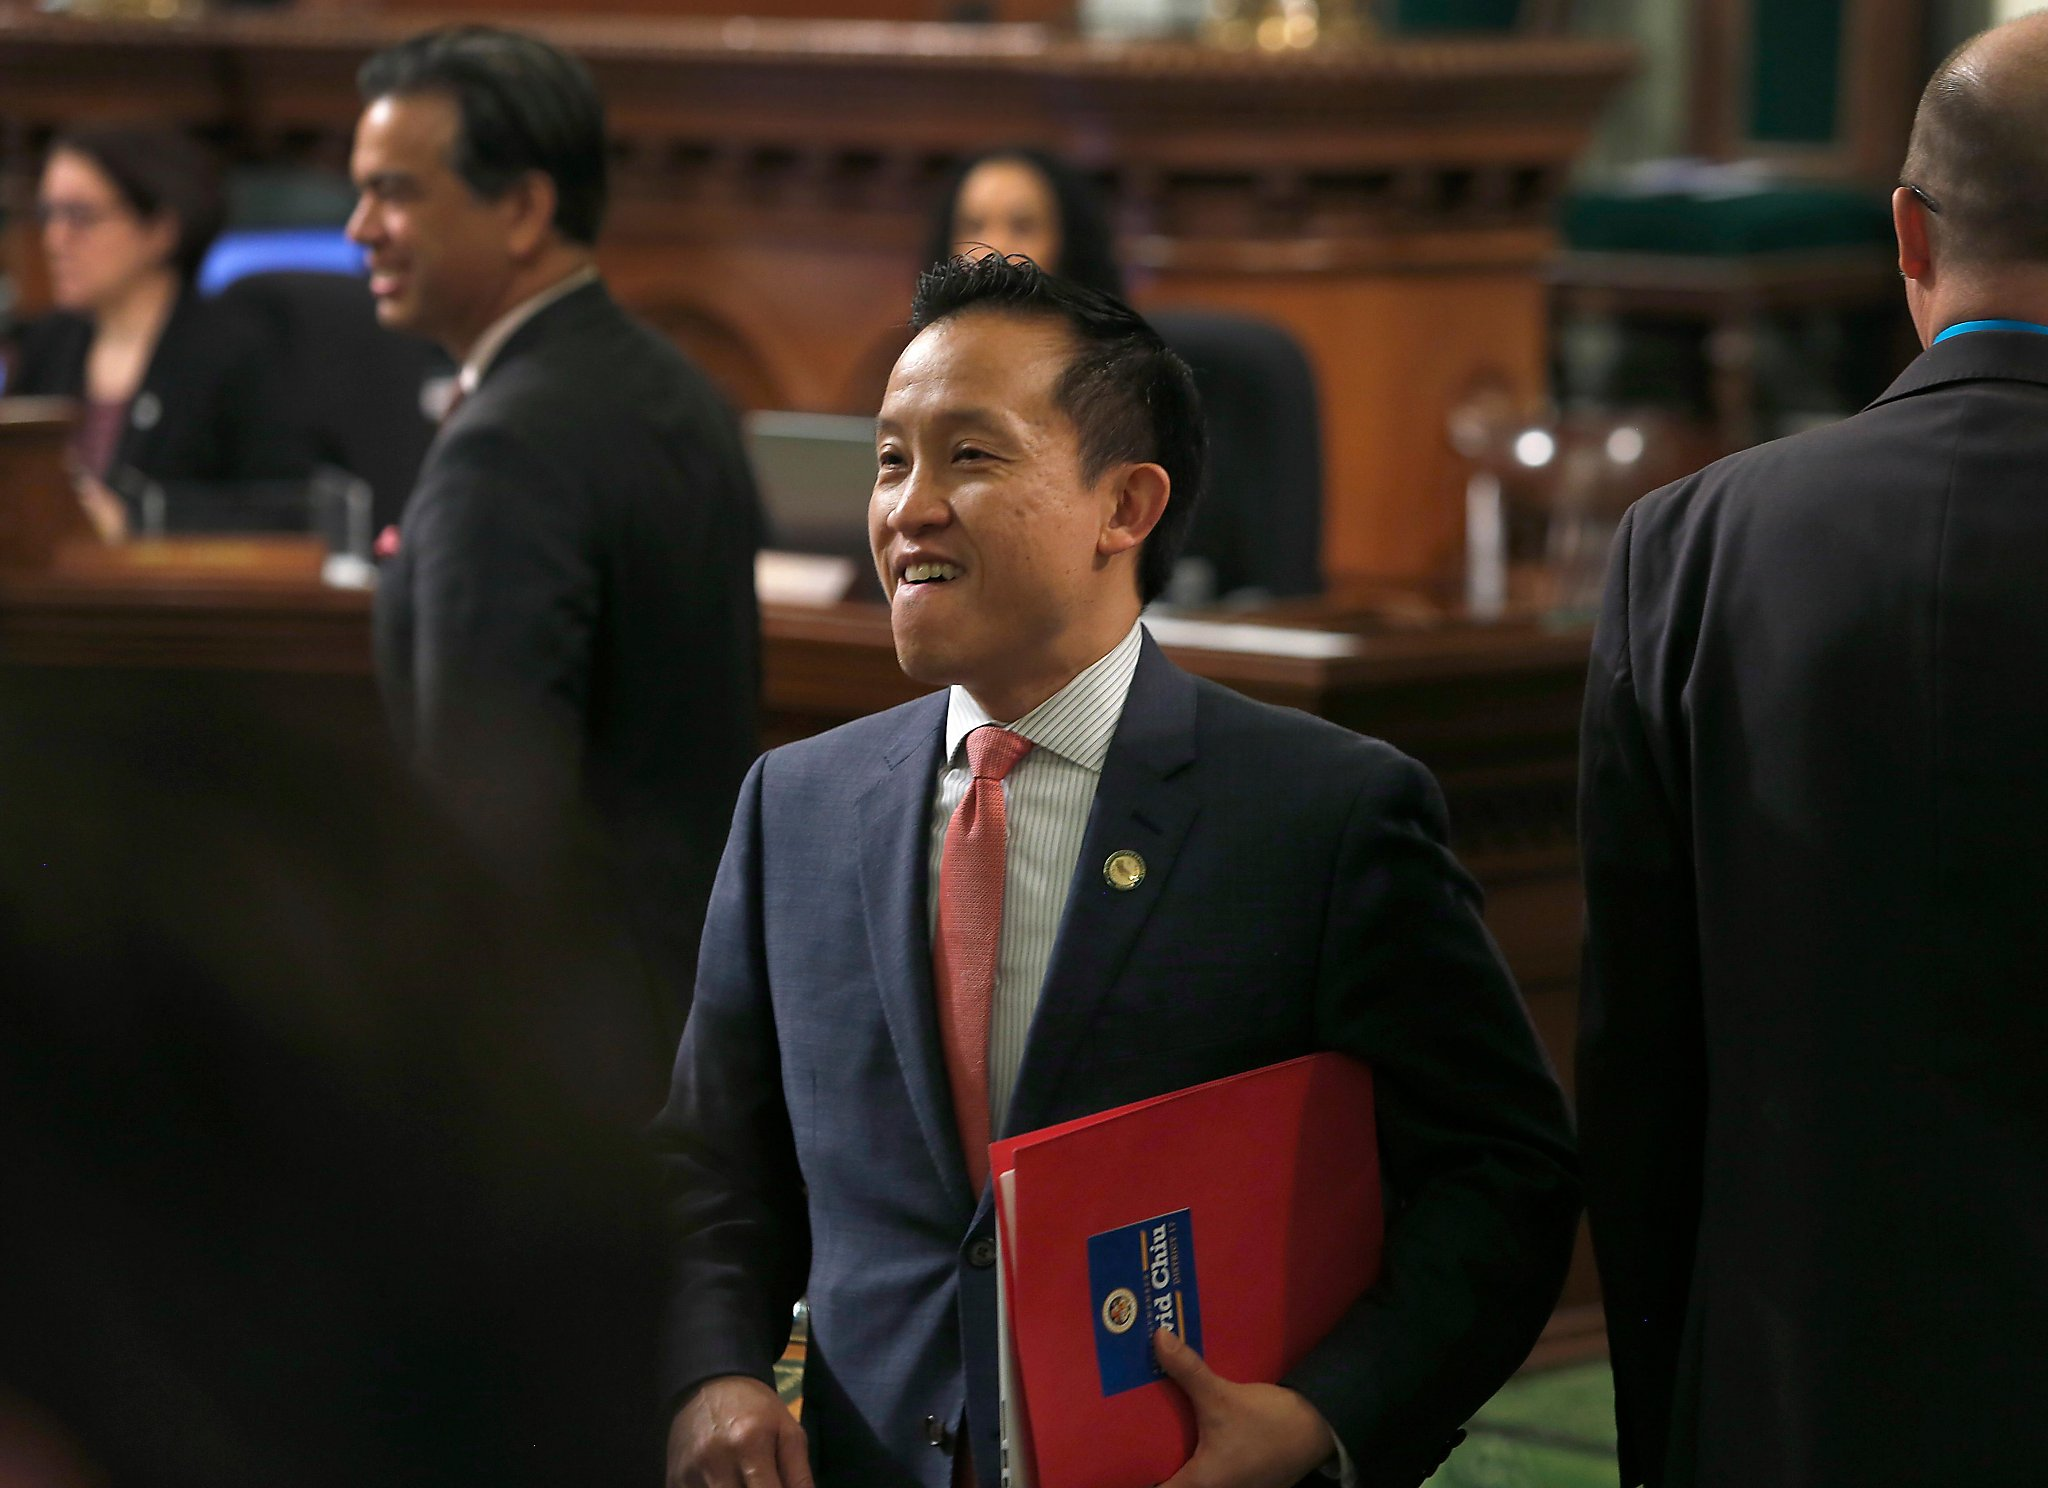 2017 05 19 California Bill Would Prevent Landlords From Asking About Immigration Status  >> California Lawmakers Approve Bill Protecting Undocumented Immigrant